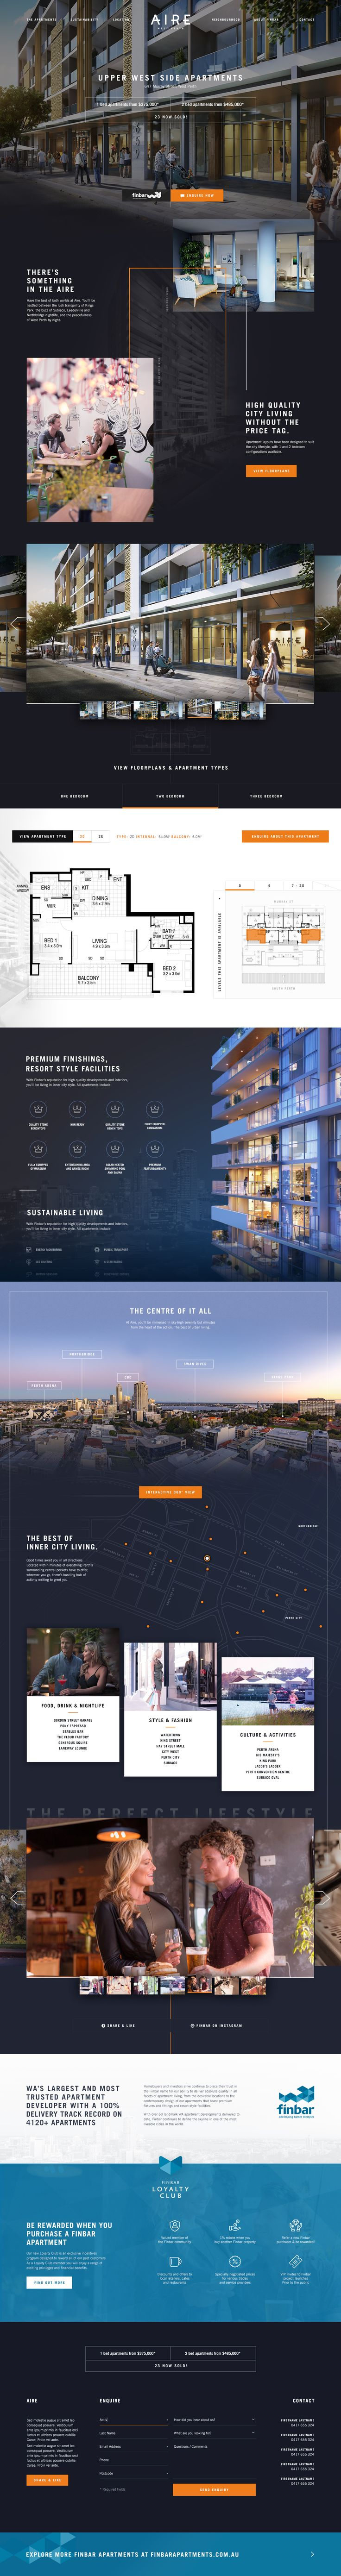 Aire Apartments One-Page Marketing Website. Ui design concept by Kylie Timpani @ Humaan